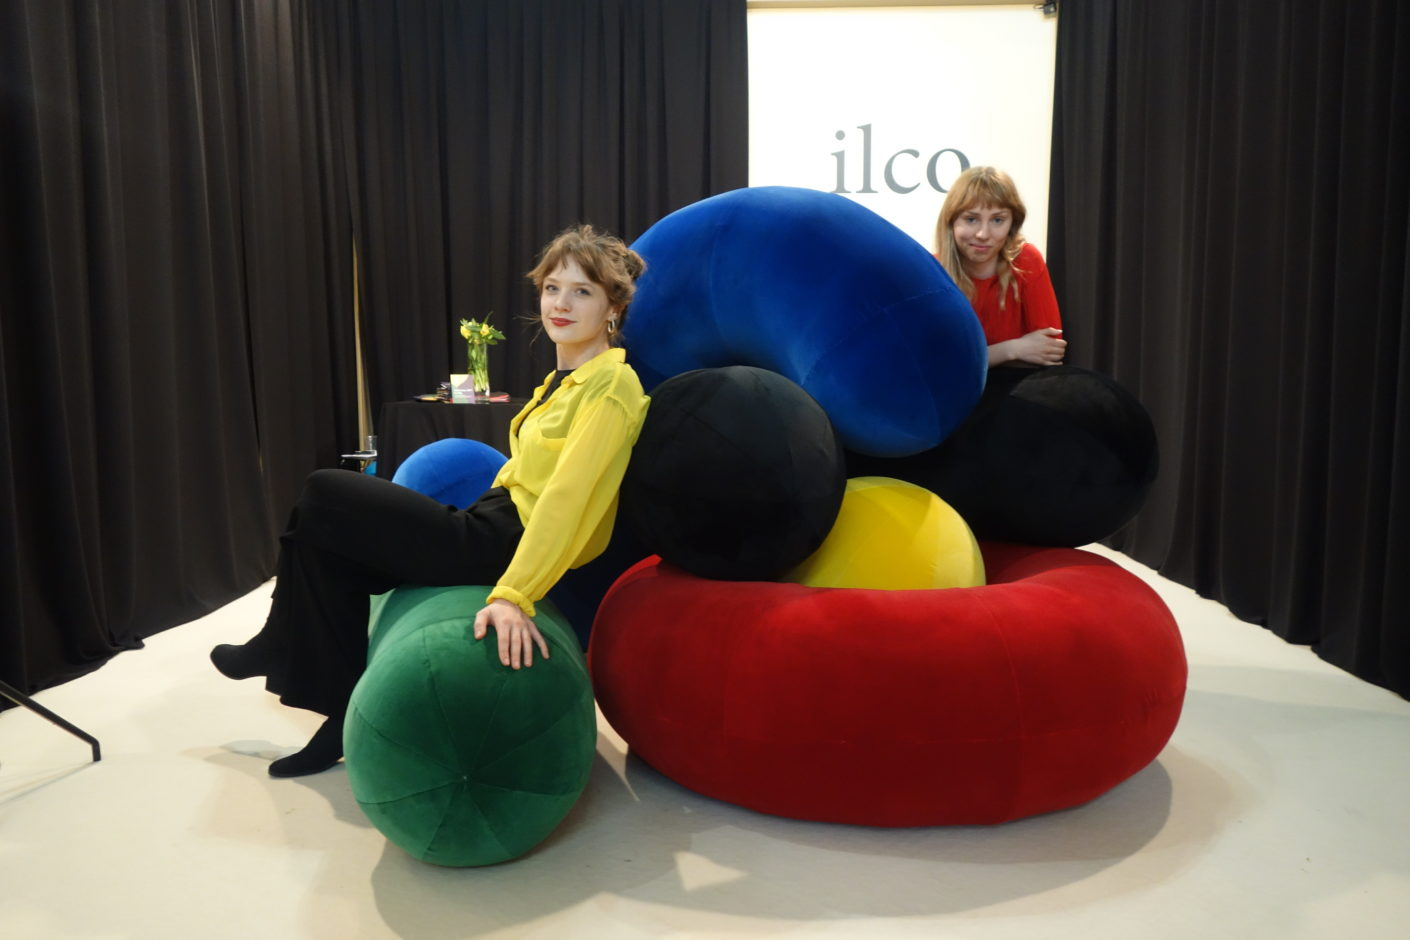 Celebrates a comeback: big upholstery furniture à la Verner Panton by Ania Marciniak, Madeleine Duflot (pictured) and Koa Pham.